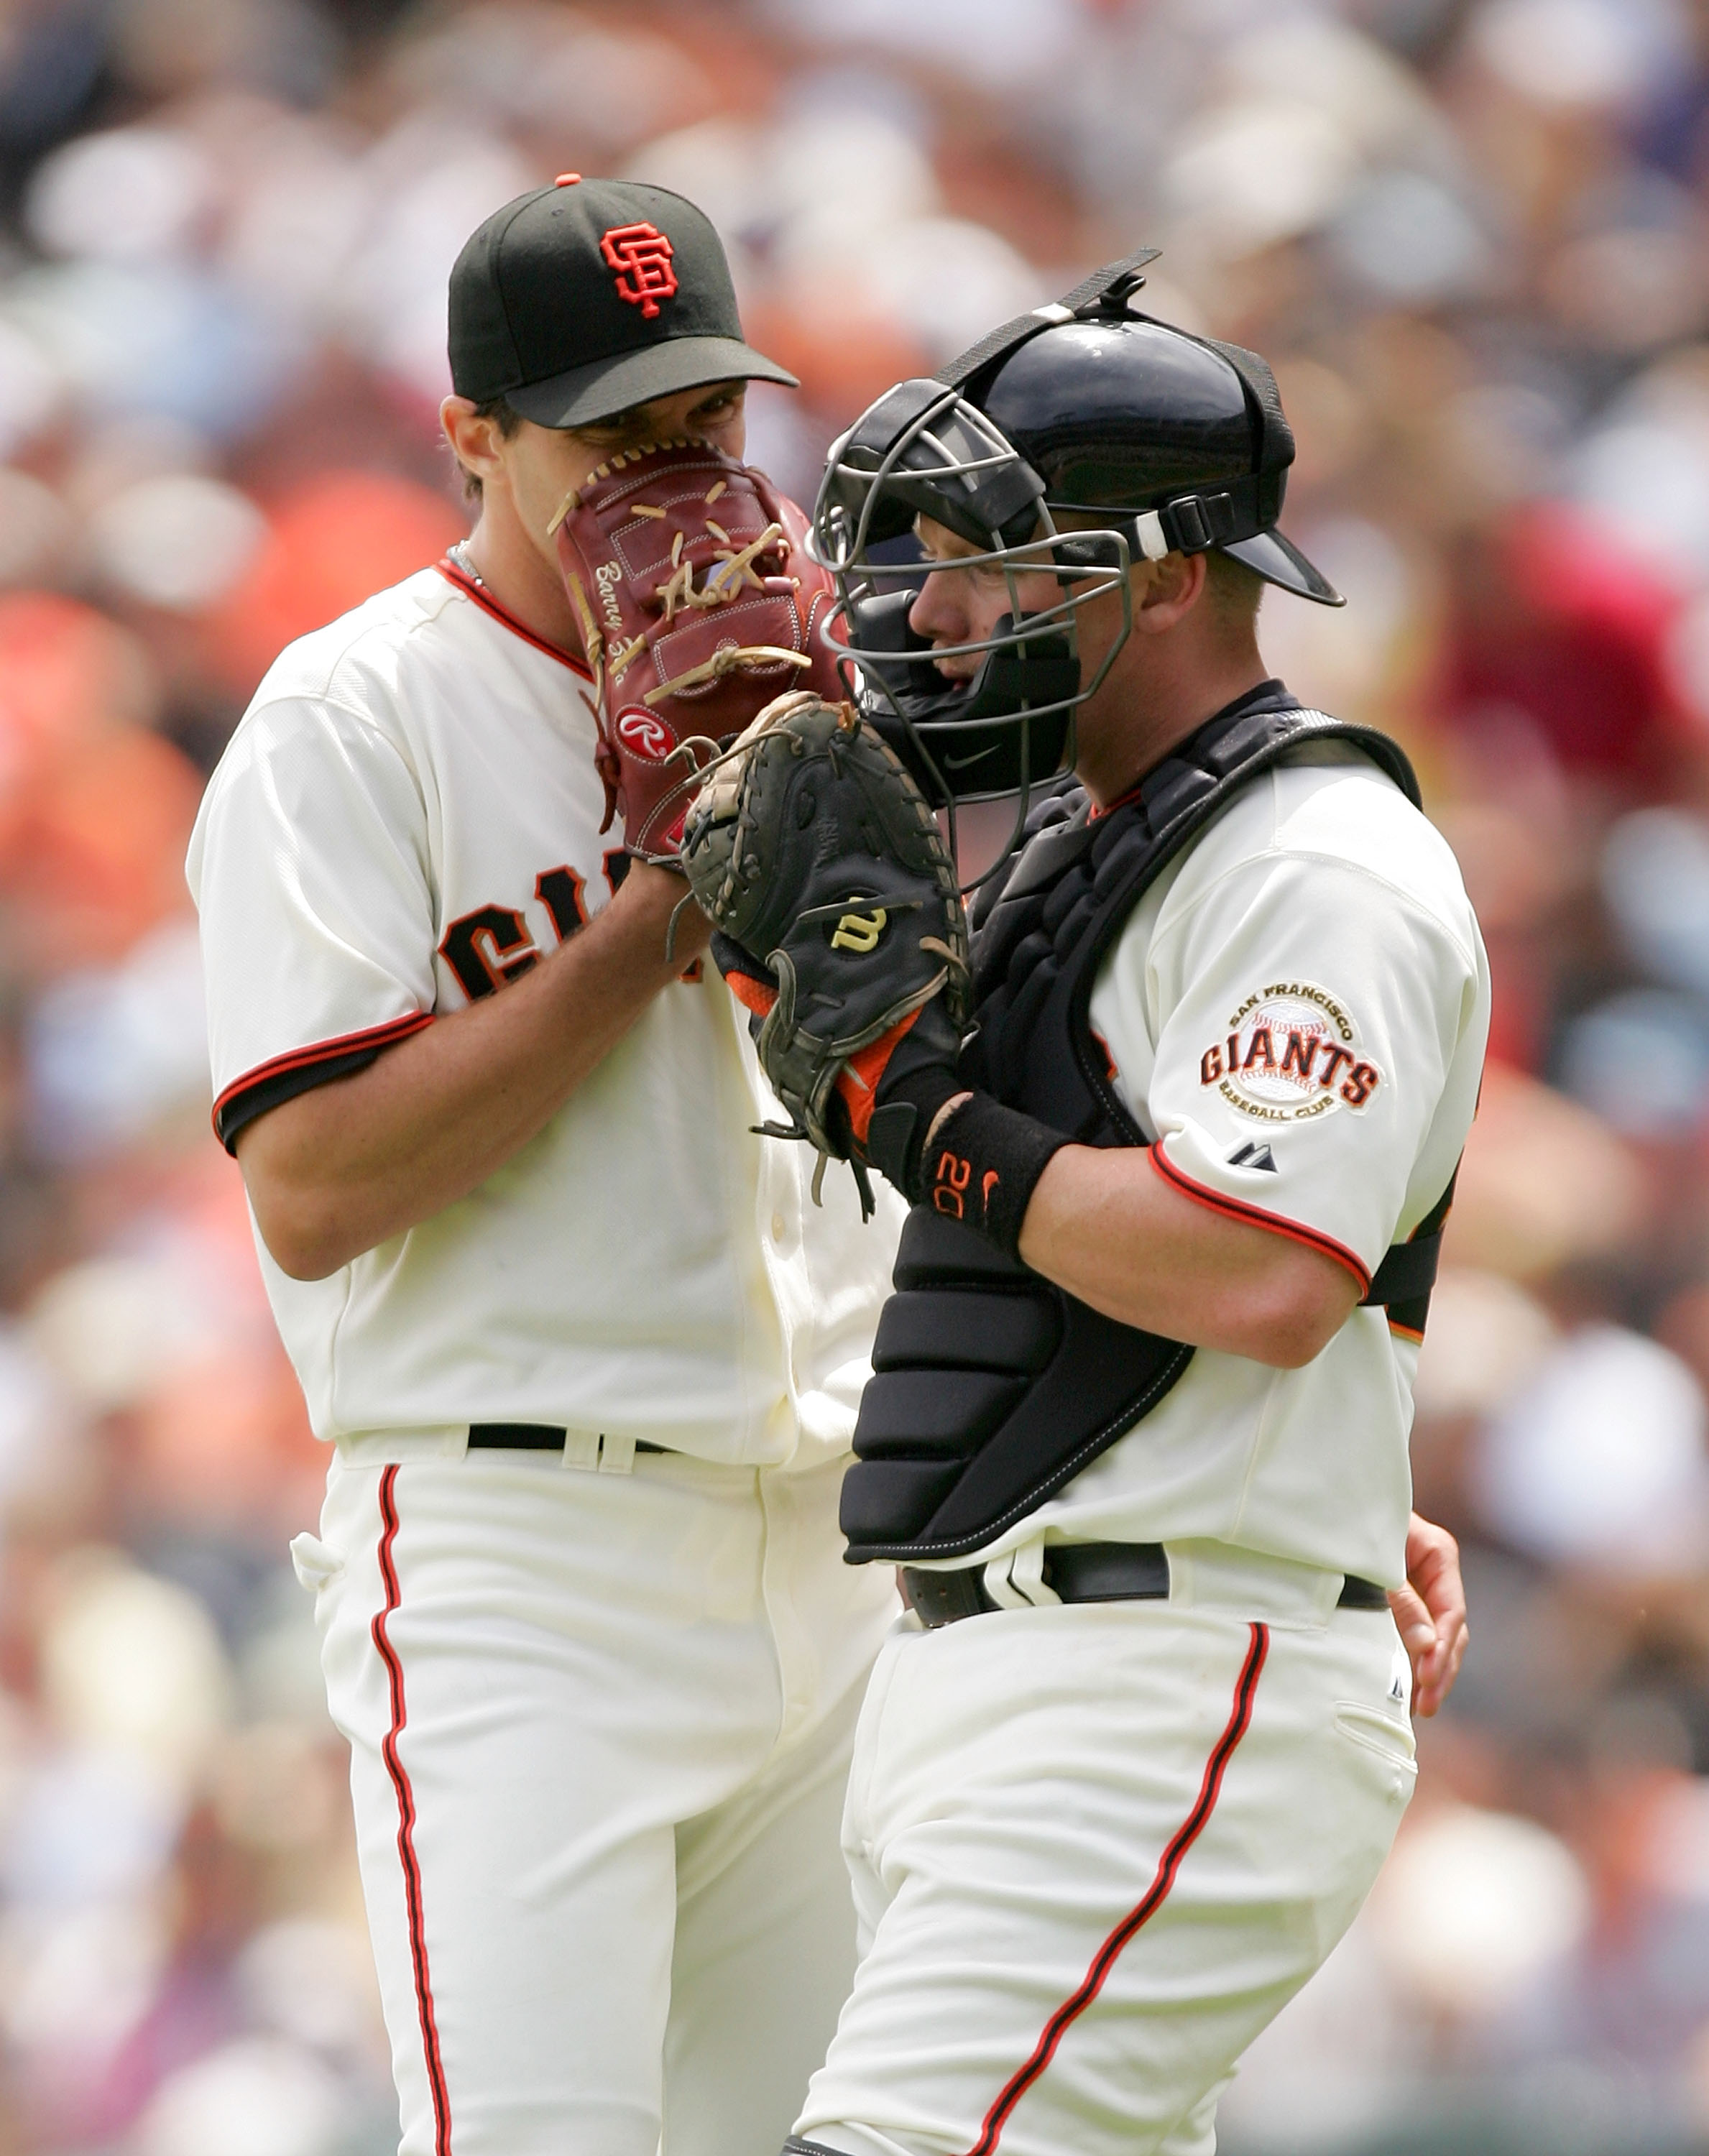 SAN FRANCISCO - MAY 13:  Catcher Steve Holm #20 speaks with Barry Zito #75 of the San Francisco Giants during their game against the Washington Nationals at AT&T Park on May 13, 2009 in San Francisco, California.  (Photo by Ezra Shaw/Getty Images)